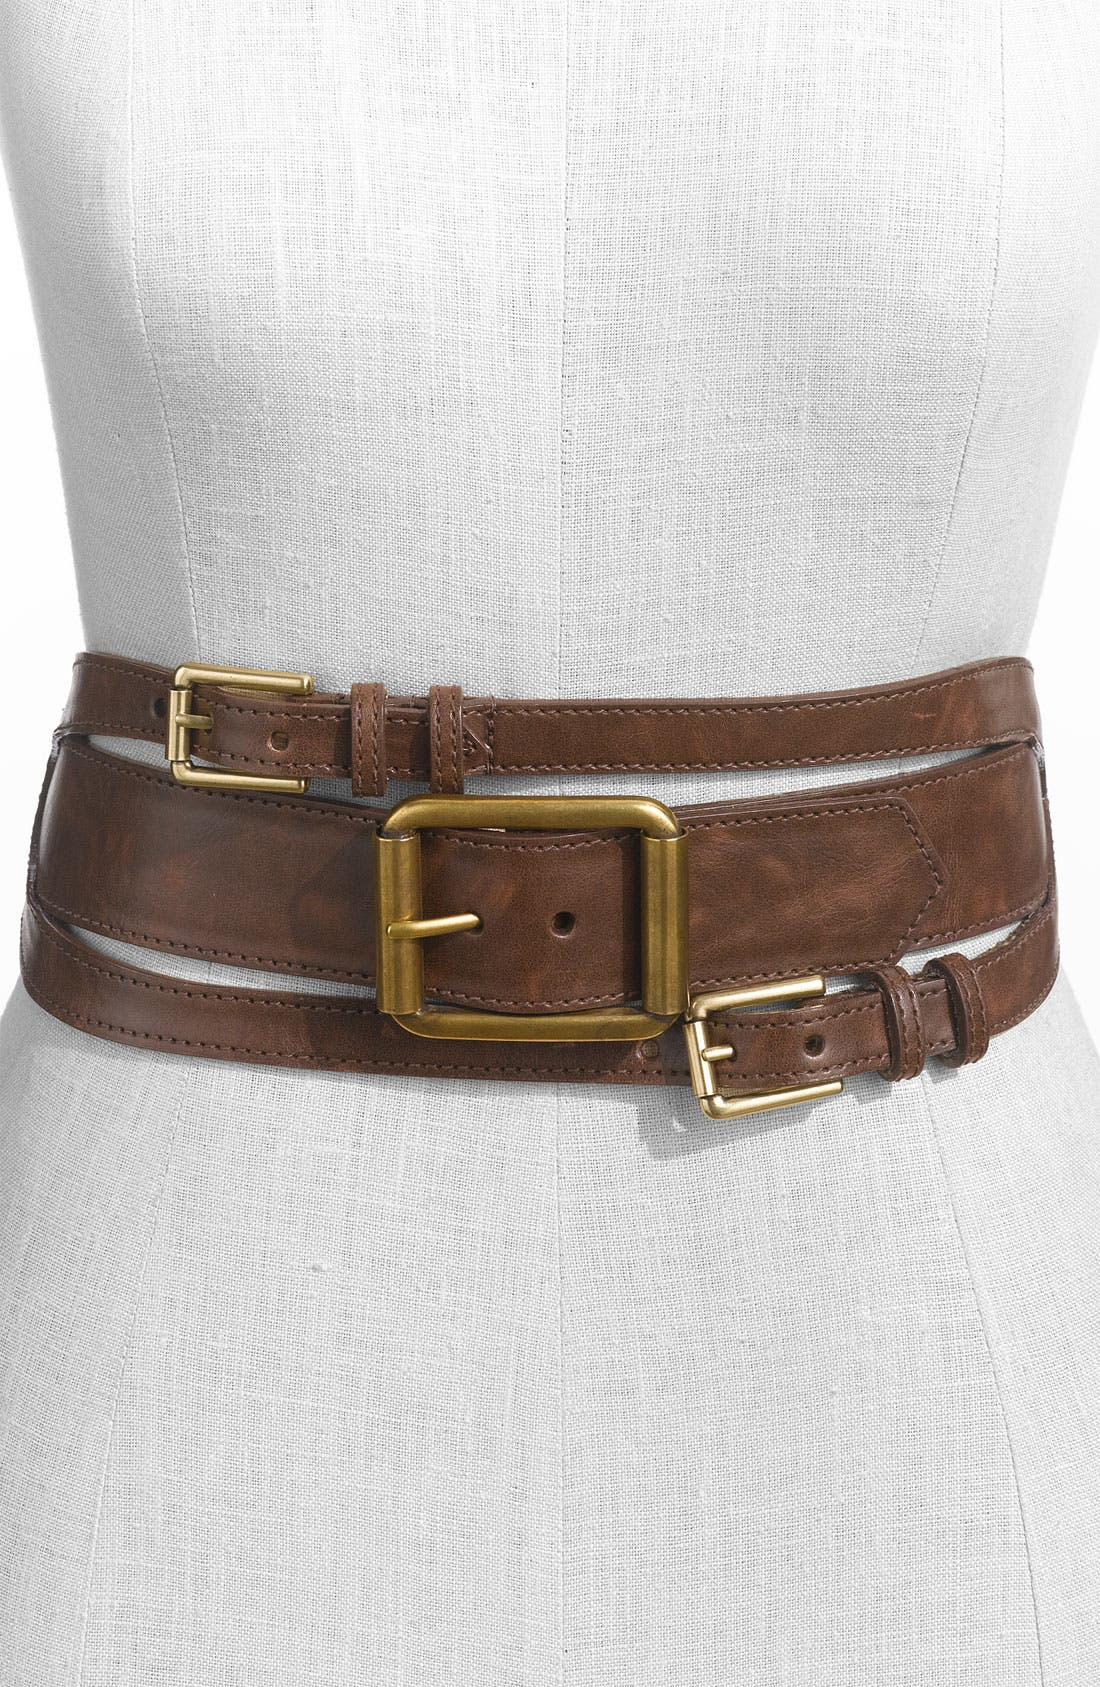 Main Image - WCM Multi Buckle Faux Leather Stretch Belt (Nordstrom Exclusive)